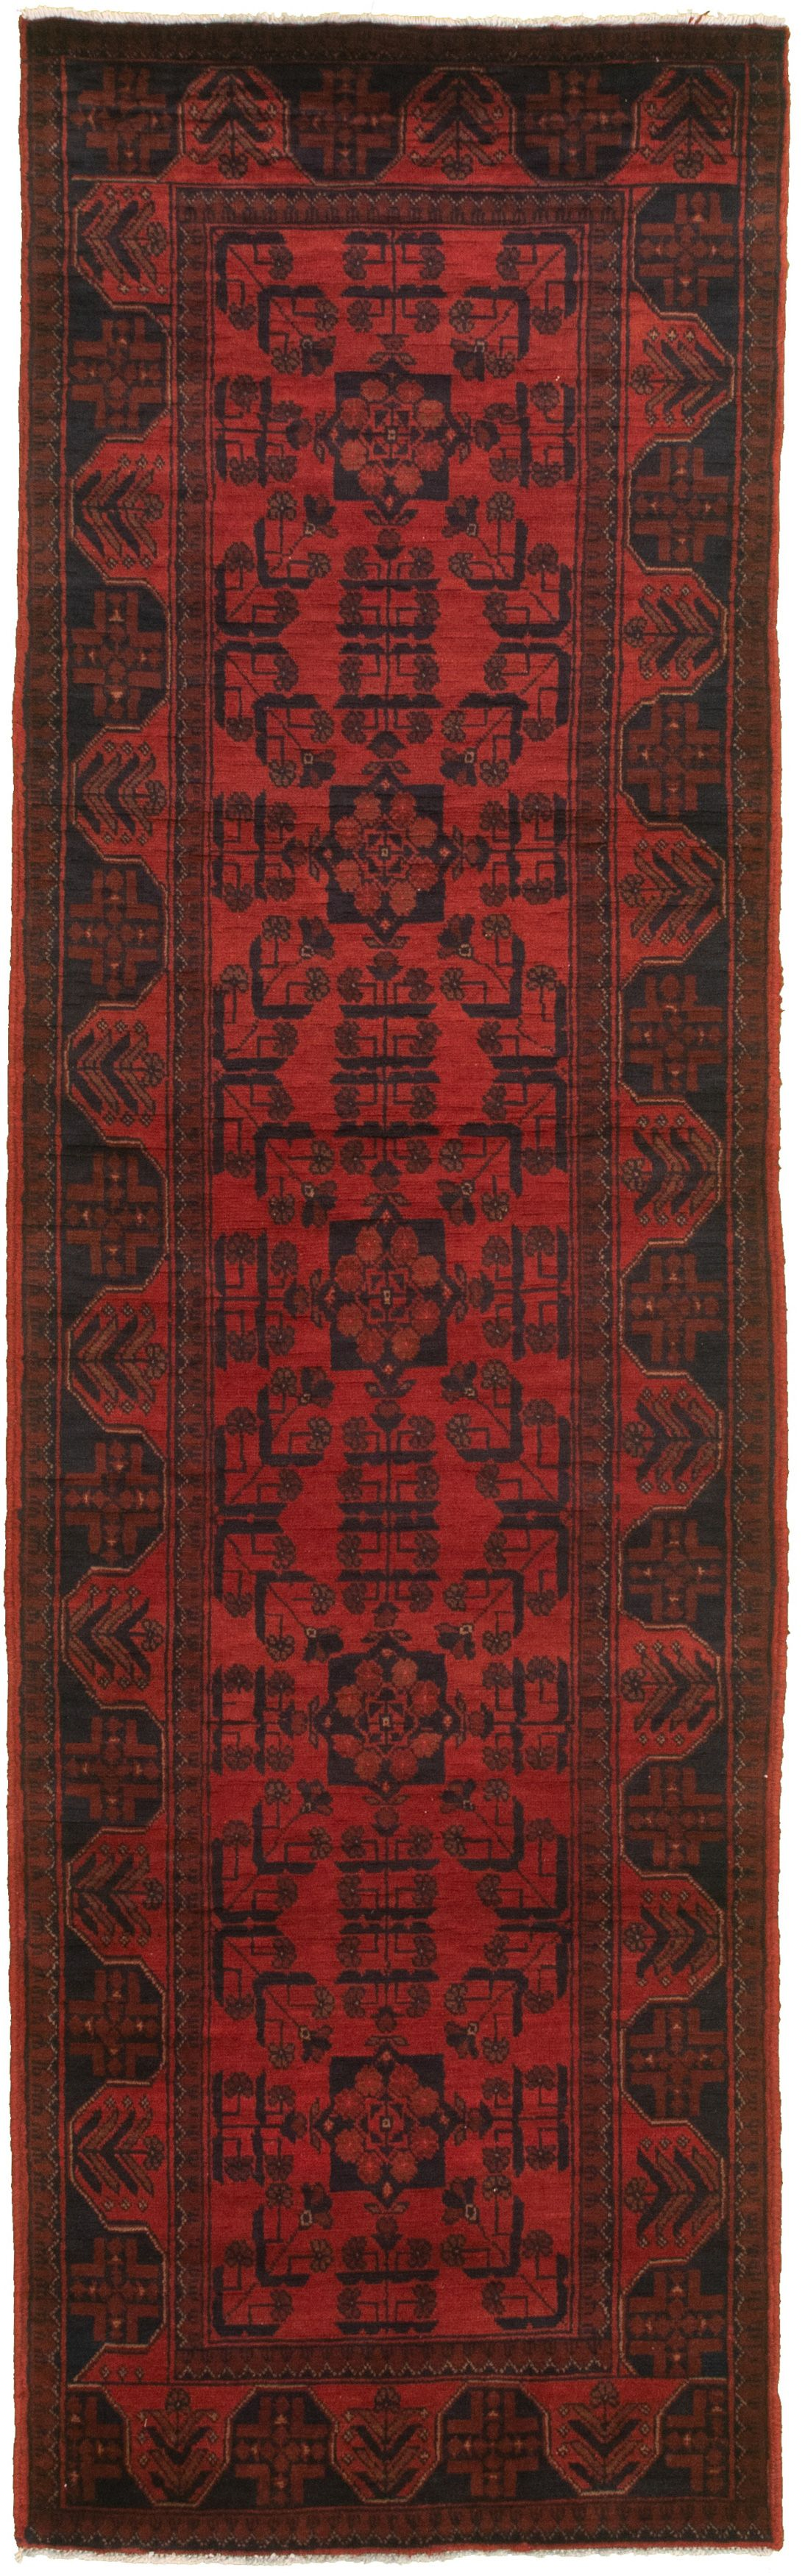 """Hand-knotted Finest Khal Mohammadi Red  Rug 2'11"""" x 9'8"""" Size: 2'11"""" x 9'8"""""""